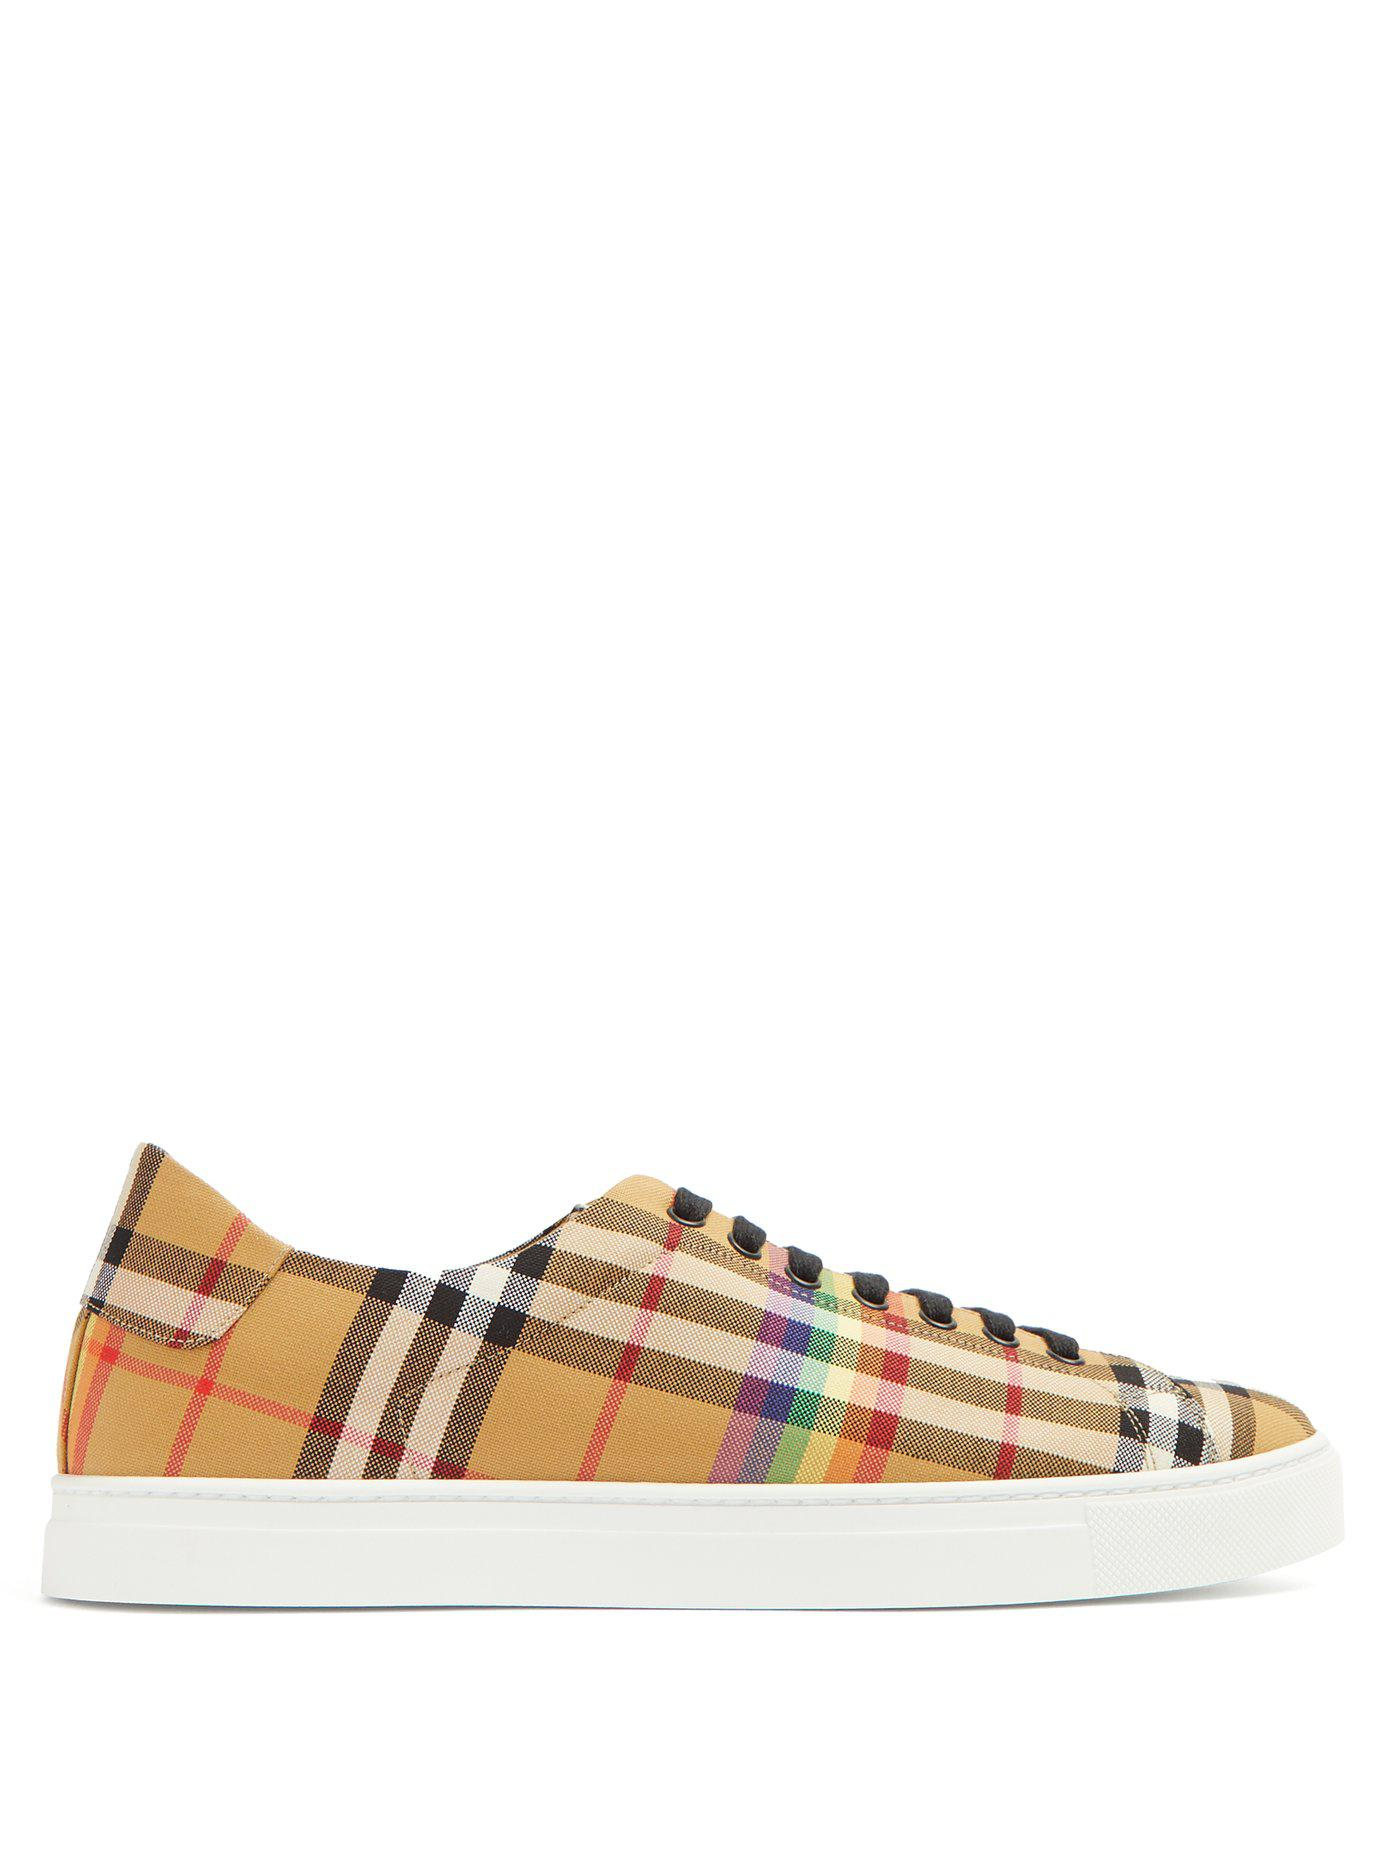 Burberry Chaussures Basses Motif - Multicolore Rhhr48g